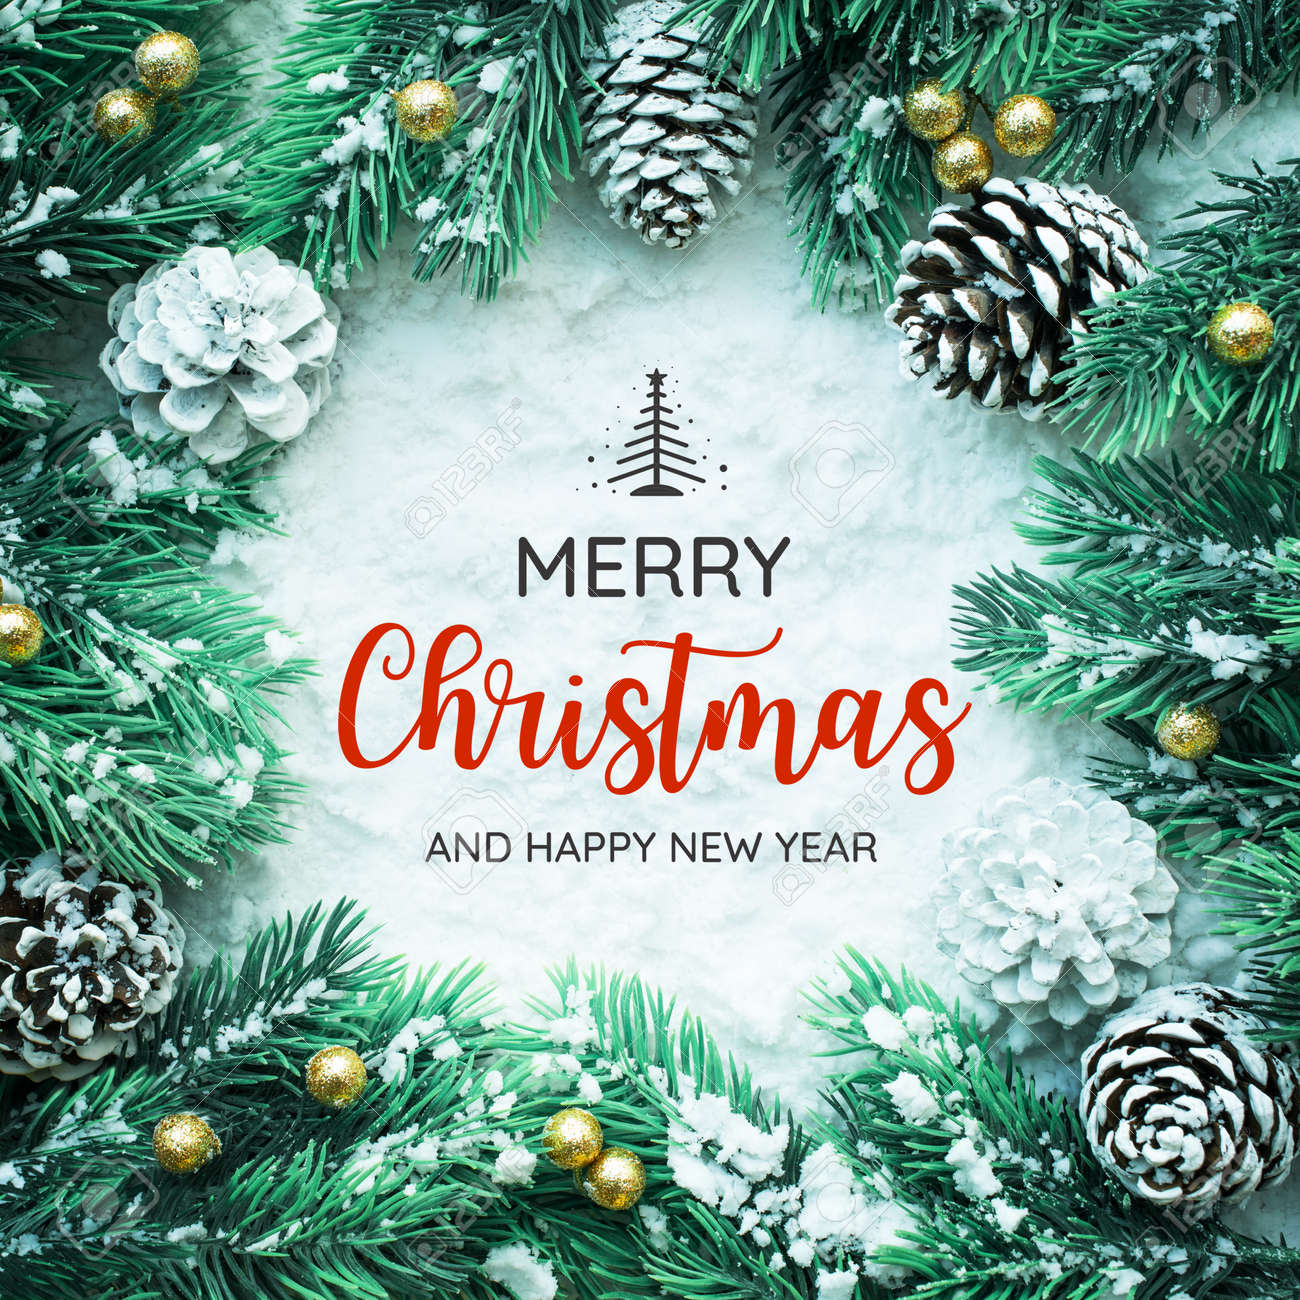 MERRY CHRISTMAS AND HAPPY NEW YEAR typography,text with christmas ornament decoration design - 128095679